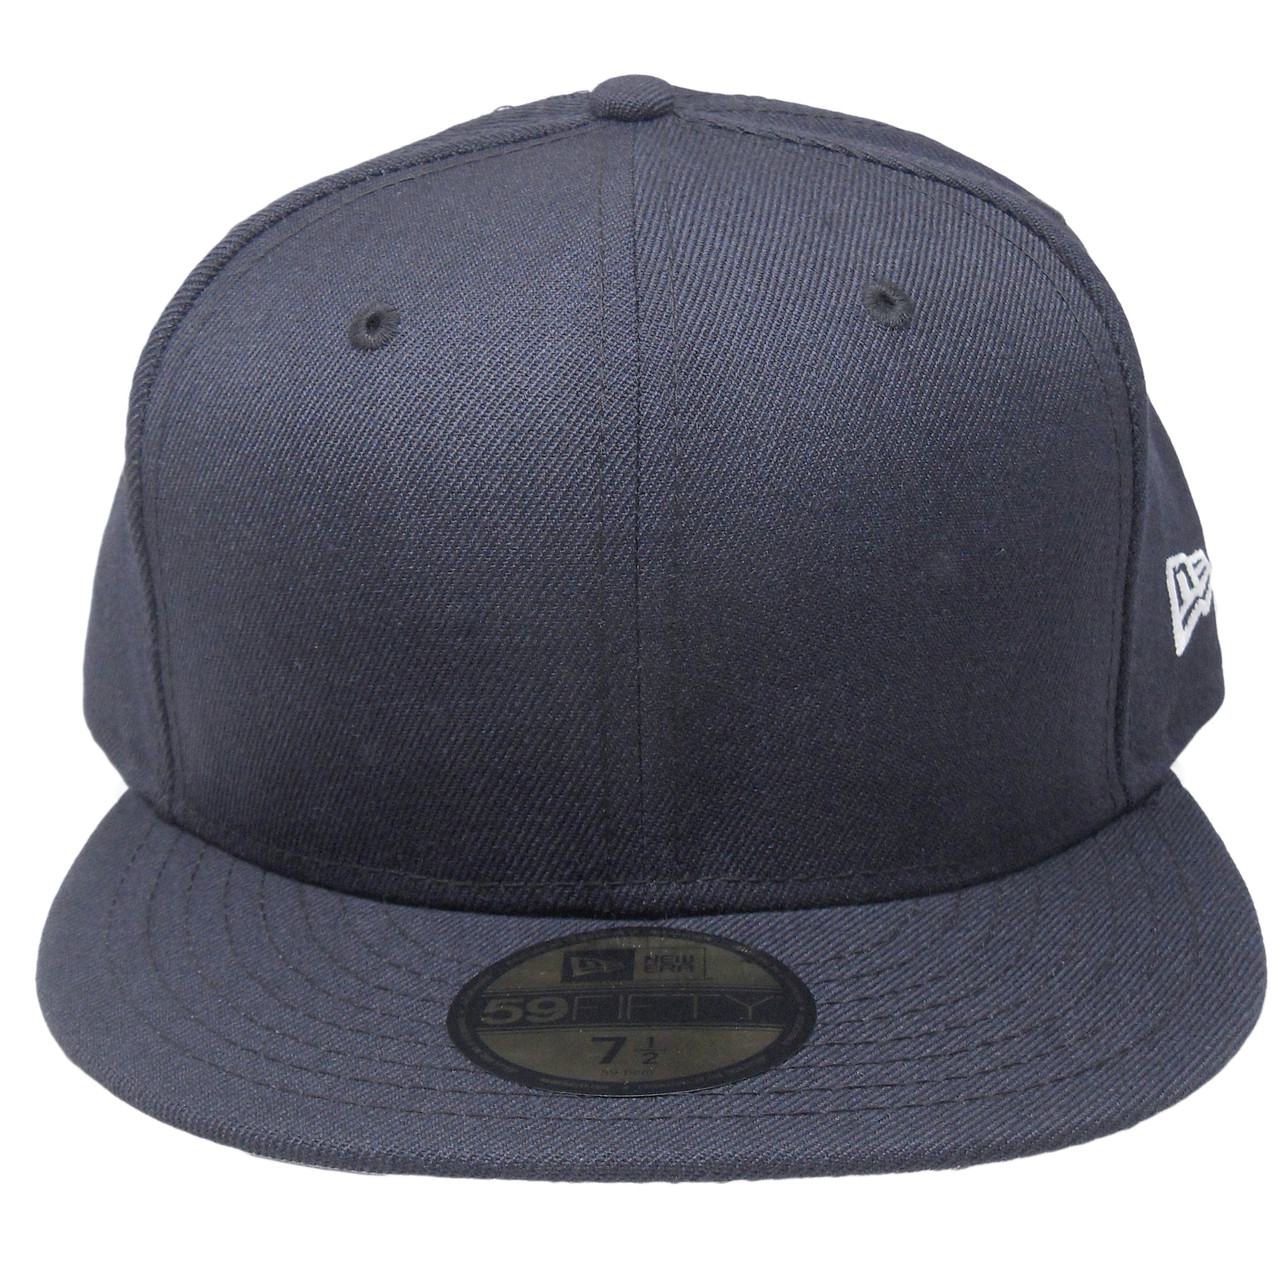 f9cb69ea New Era 59Fifty Plain Blank Fitted Hat - Navy